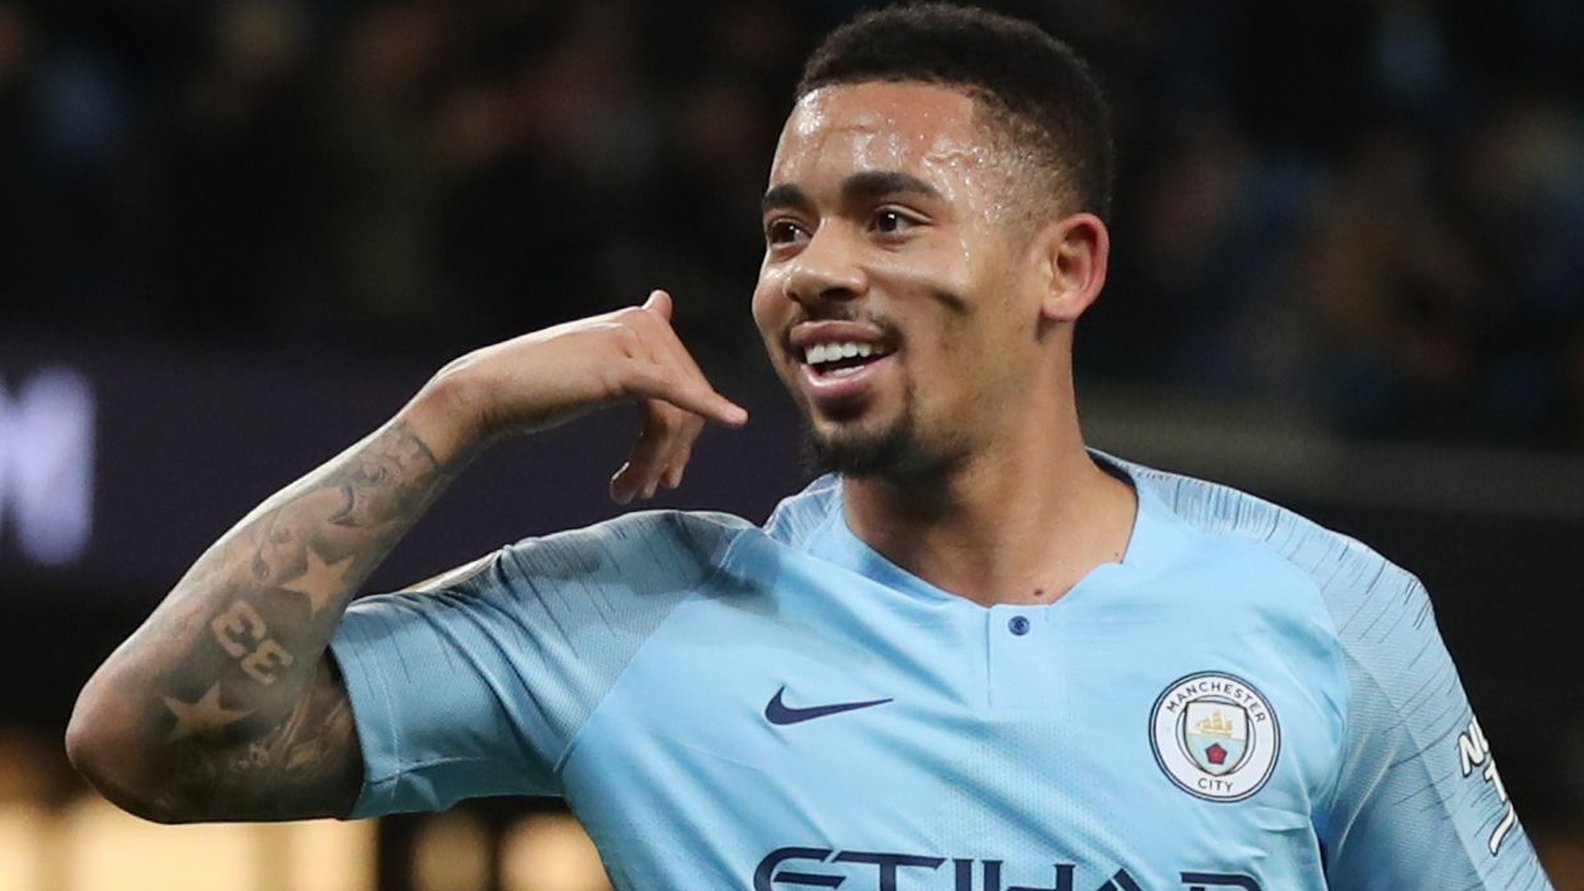 Manchester City 3-0 Wolves: Gabriel Jesus scores twice as City narrow gap on Liverpool